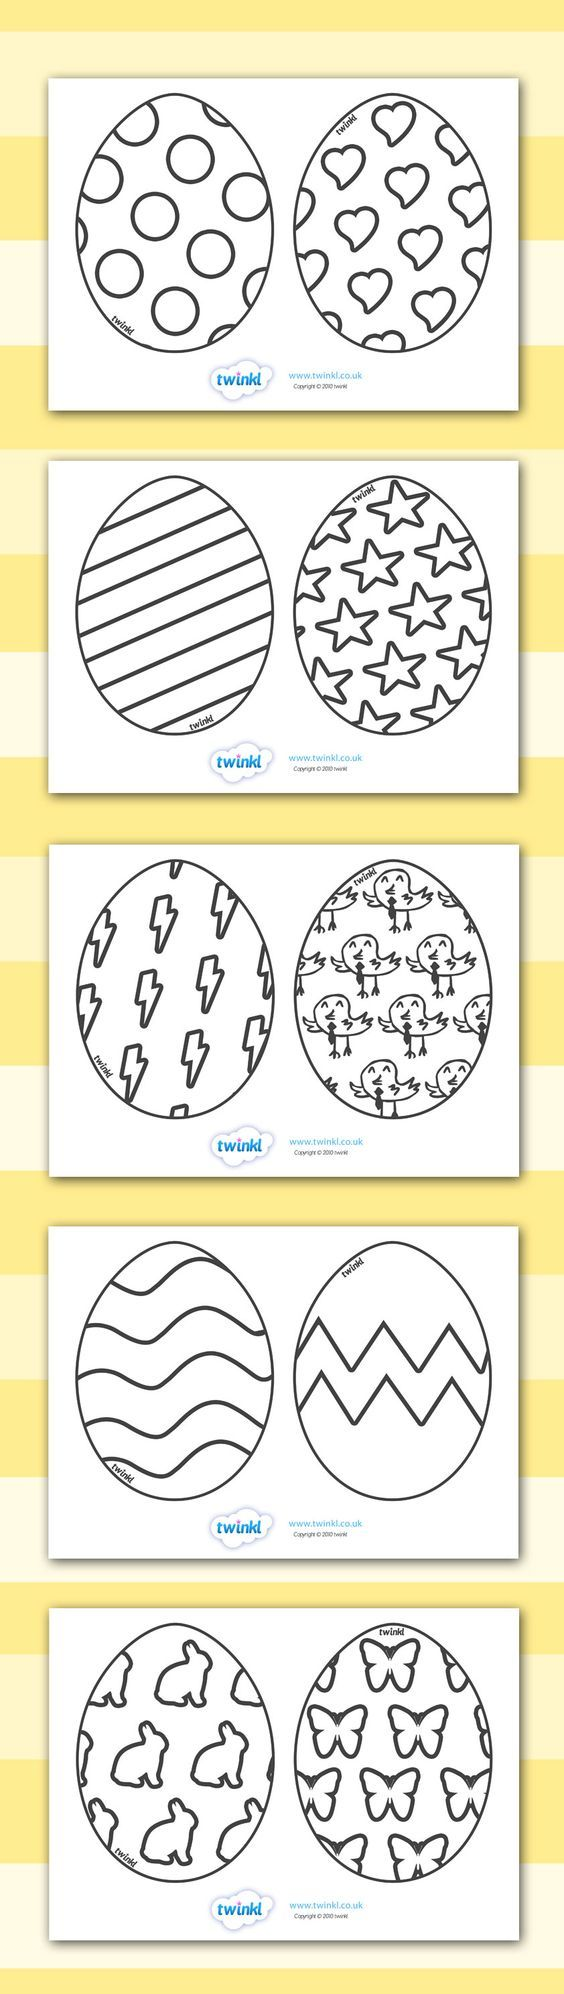 Easter Egg Colouring Templates Easter Egg Template Easter Preschool Easter Printables